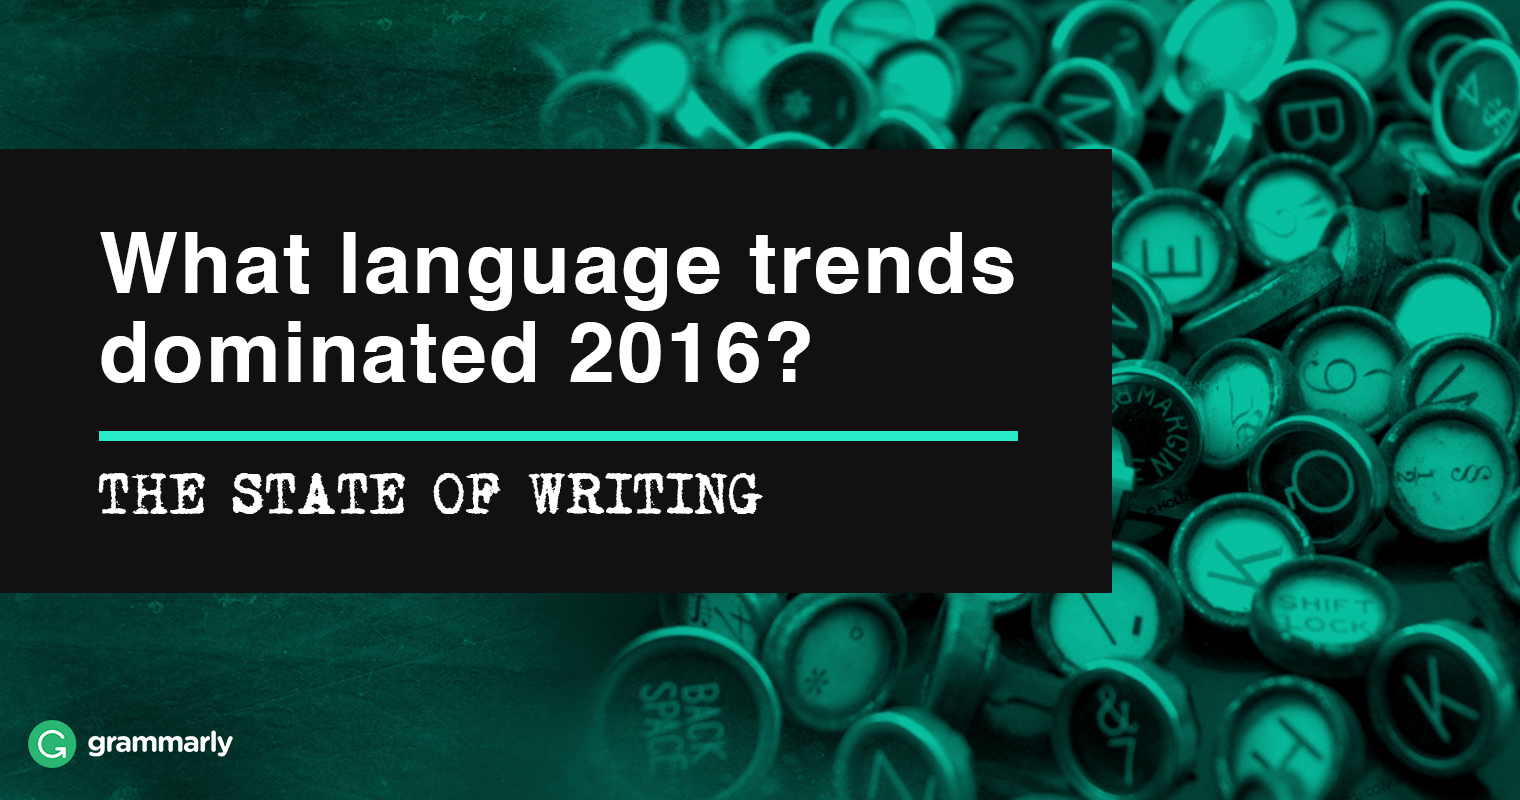 The State of Writing 2016